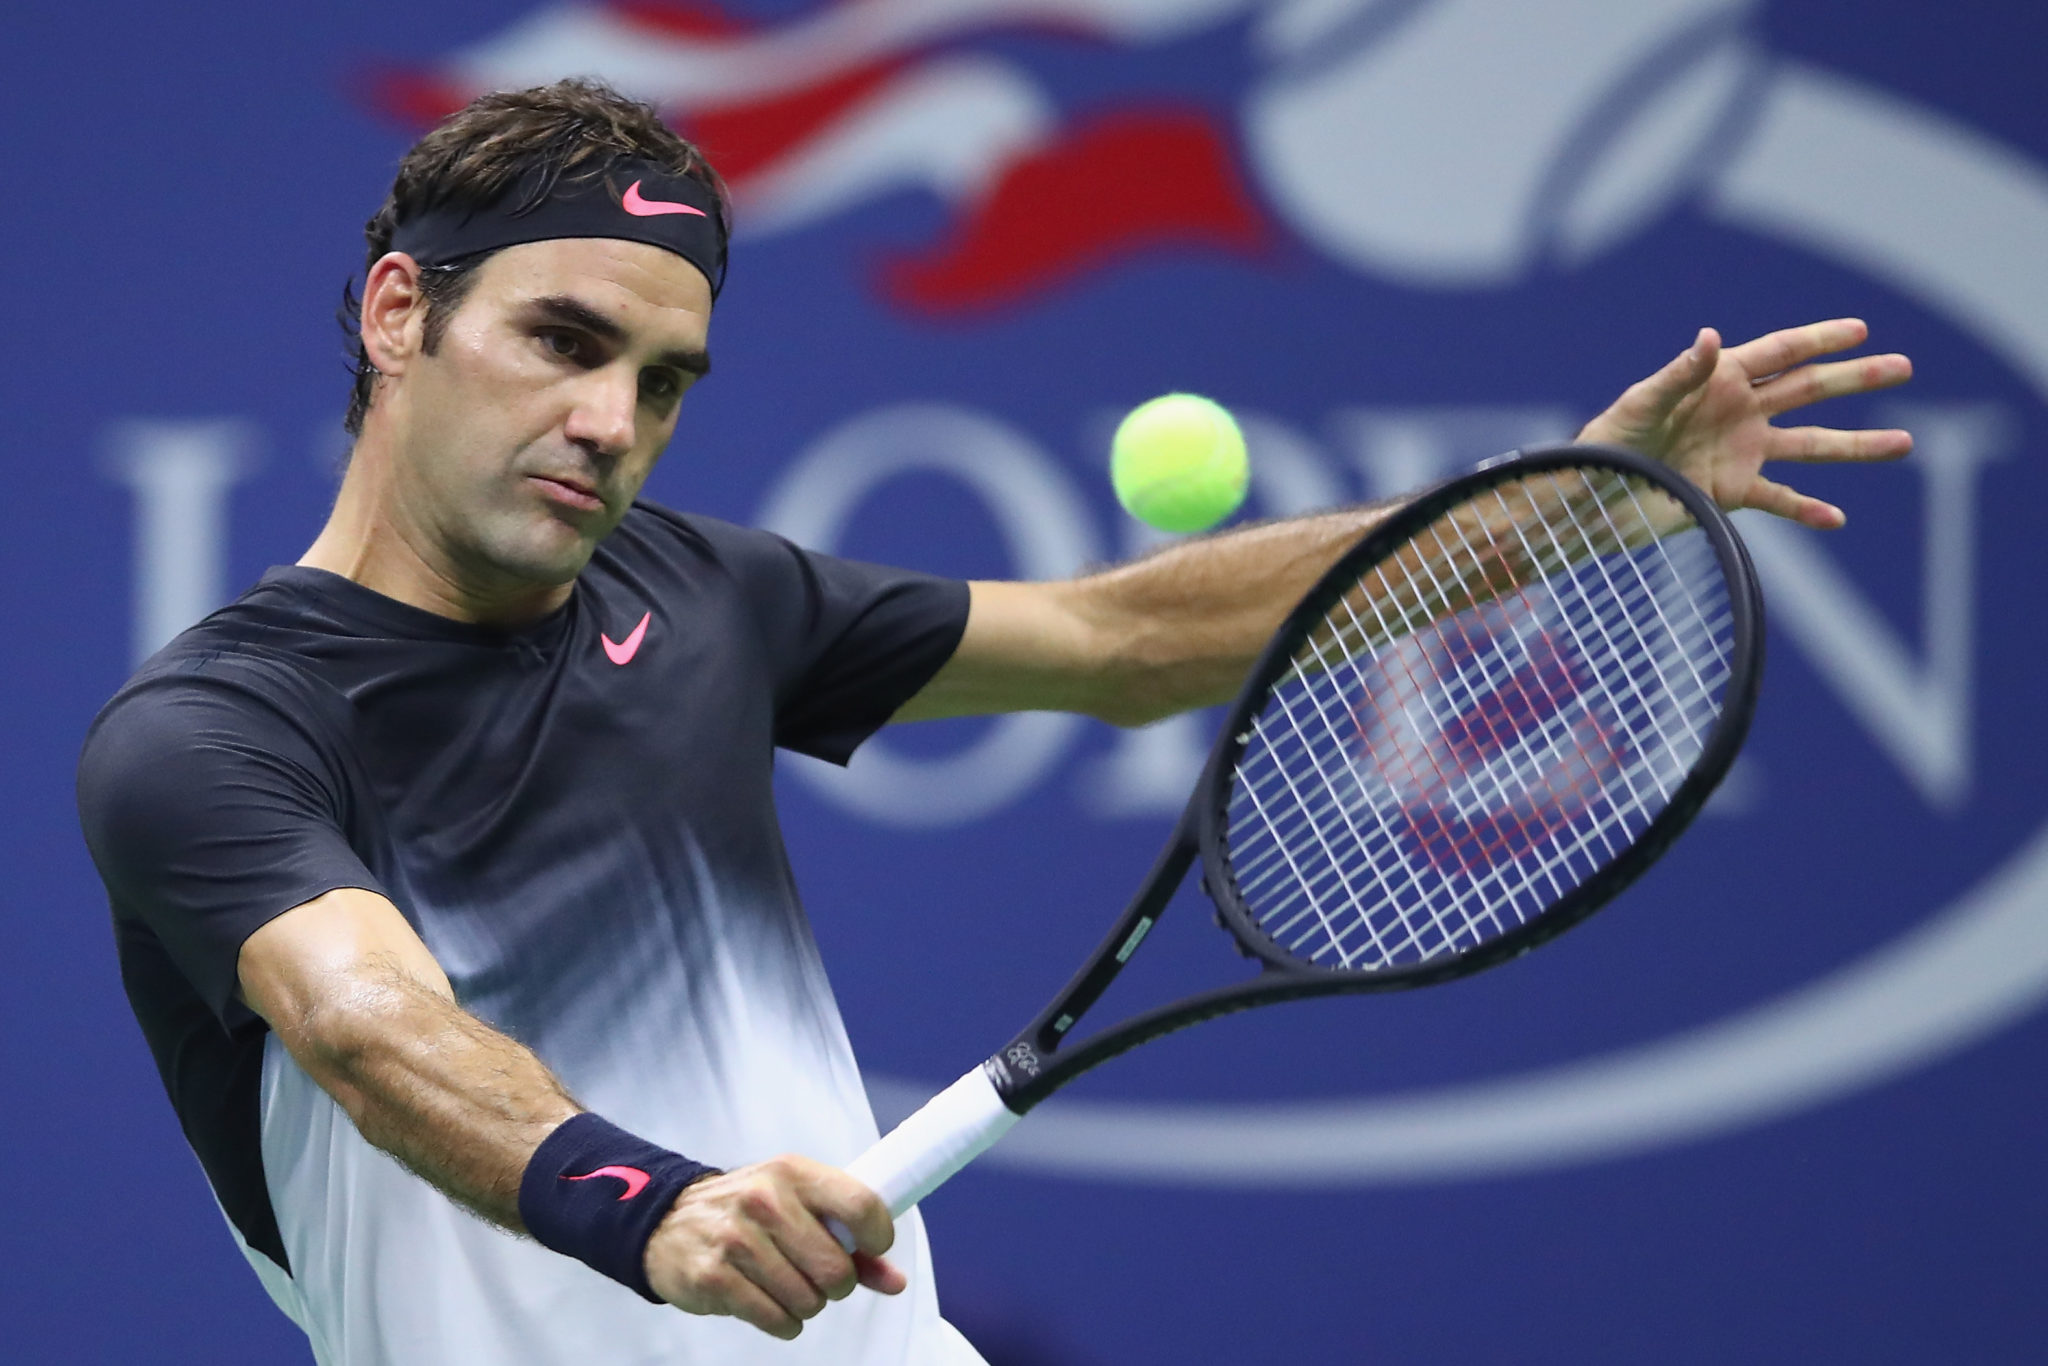 2017 US Open Tennis Championships – Day 10